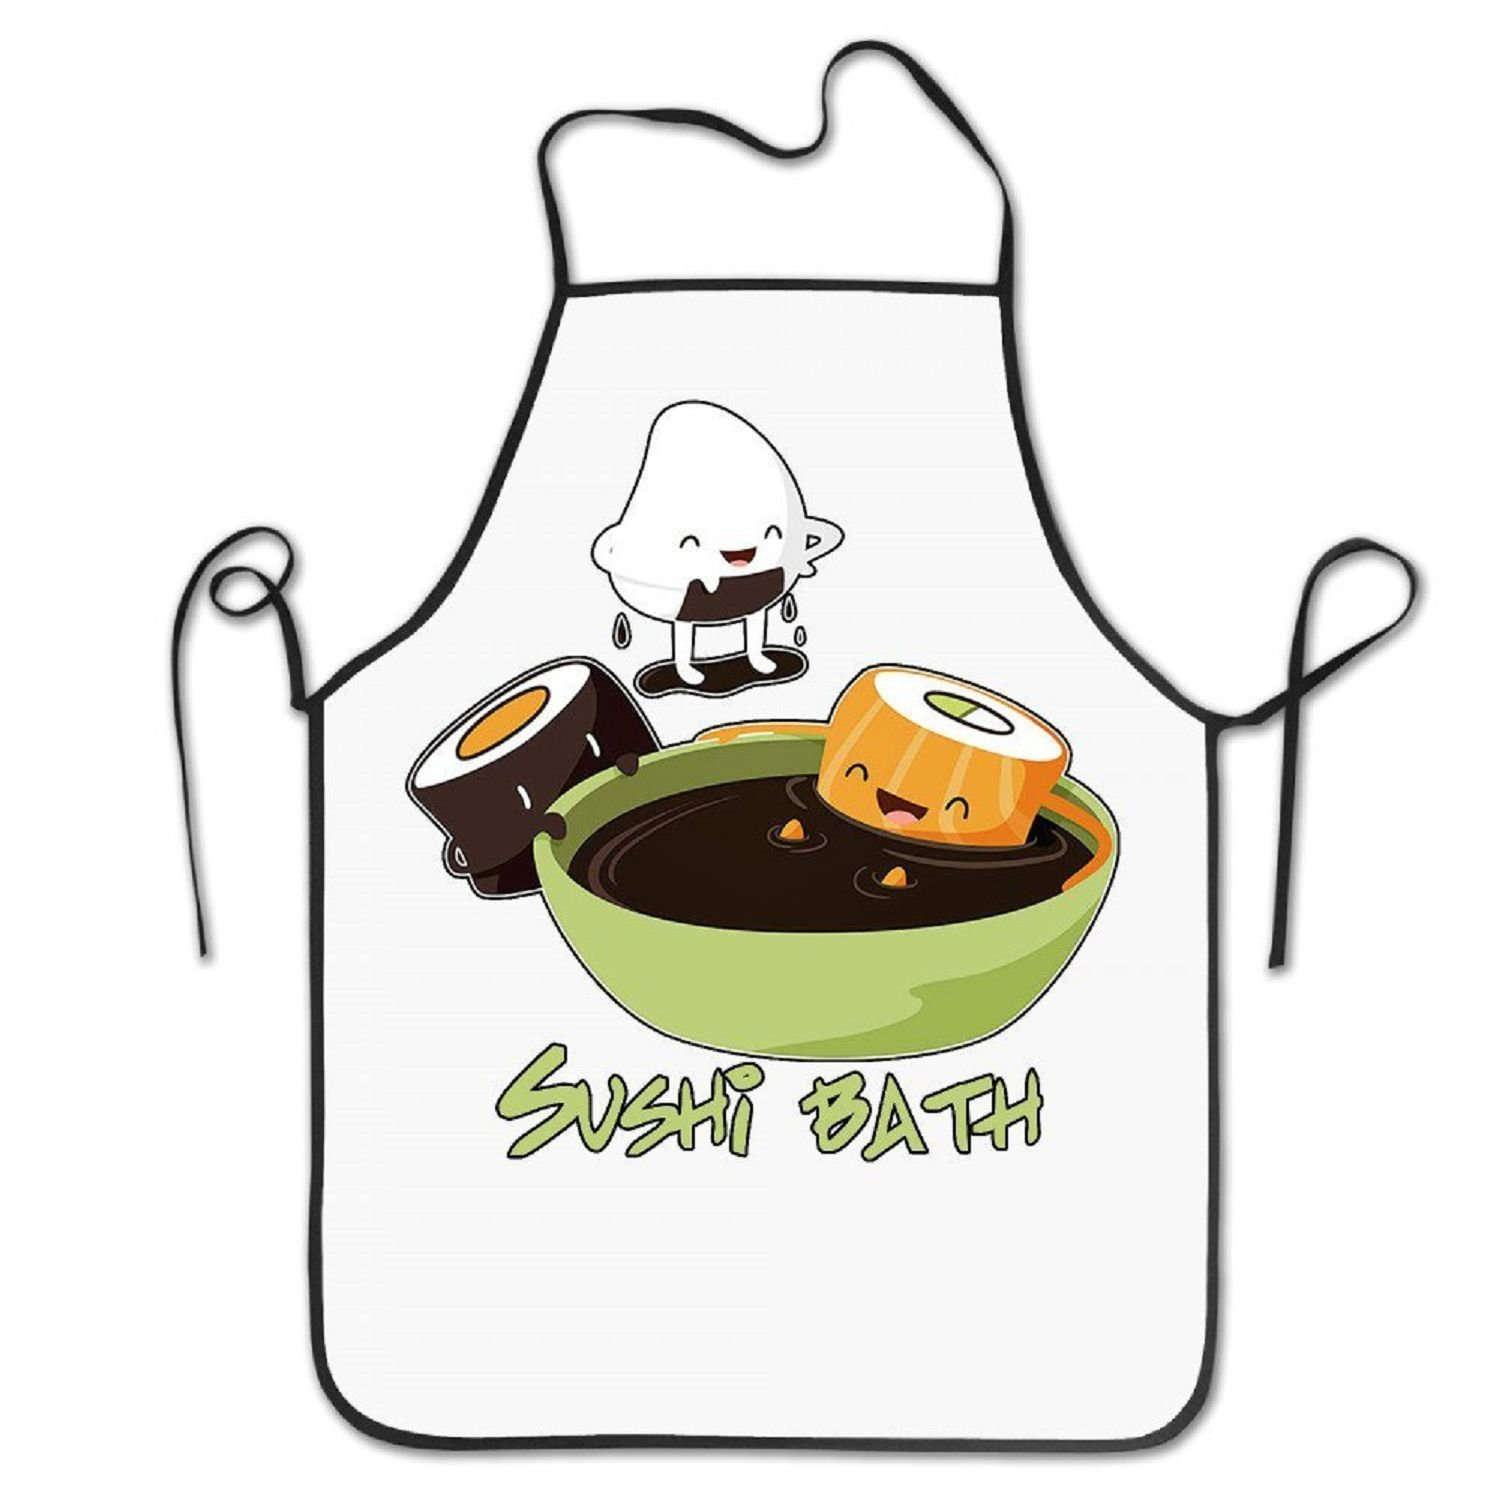 starmengphis Funny Sushi Bath Spa Chef Women's Men's Funny Creative Print Cooking Aprons by starmengphis (Image #1)